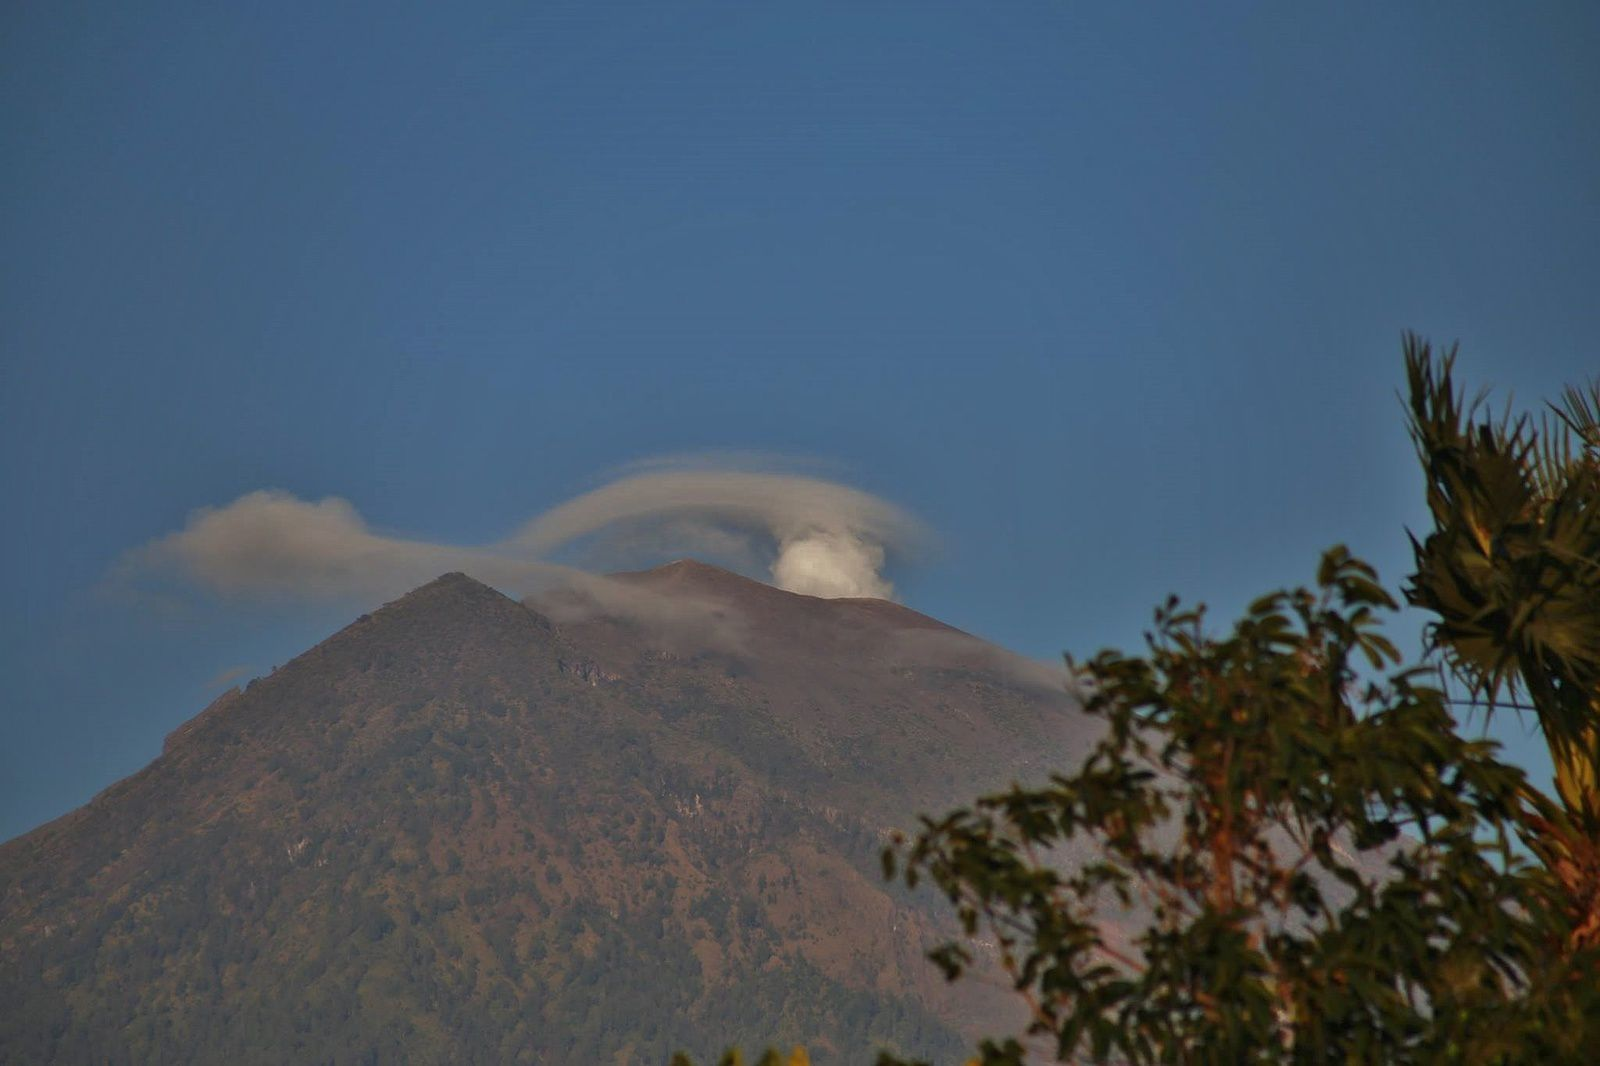 The Agung surmounted by a small plume of gas and steam this 04.10.2017 - photo Hakon Gustavsen via oystein Andersen